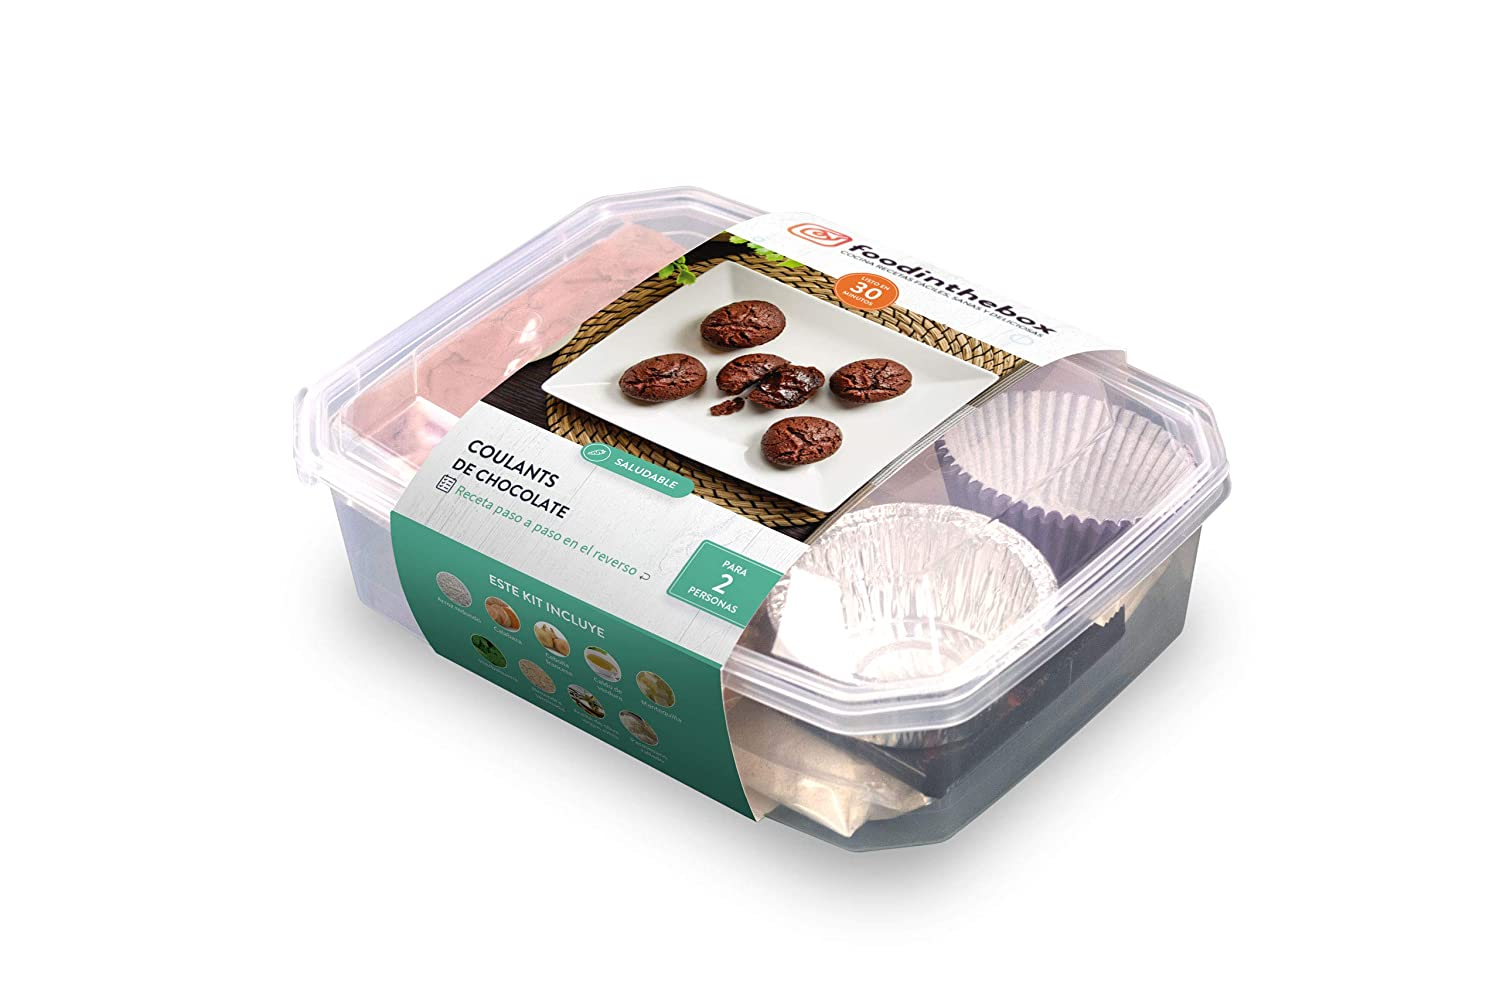 Kit para cocinar - Coulants de chocolate de Foodinthebox (6 coulants): Amazon.es: Alimentación y bebidas